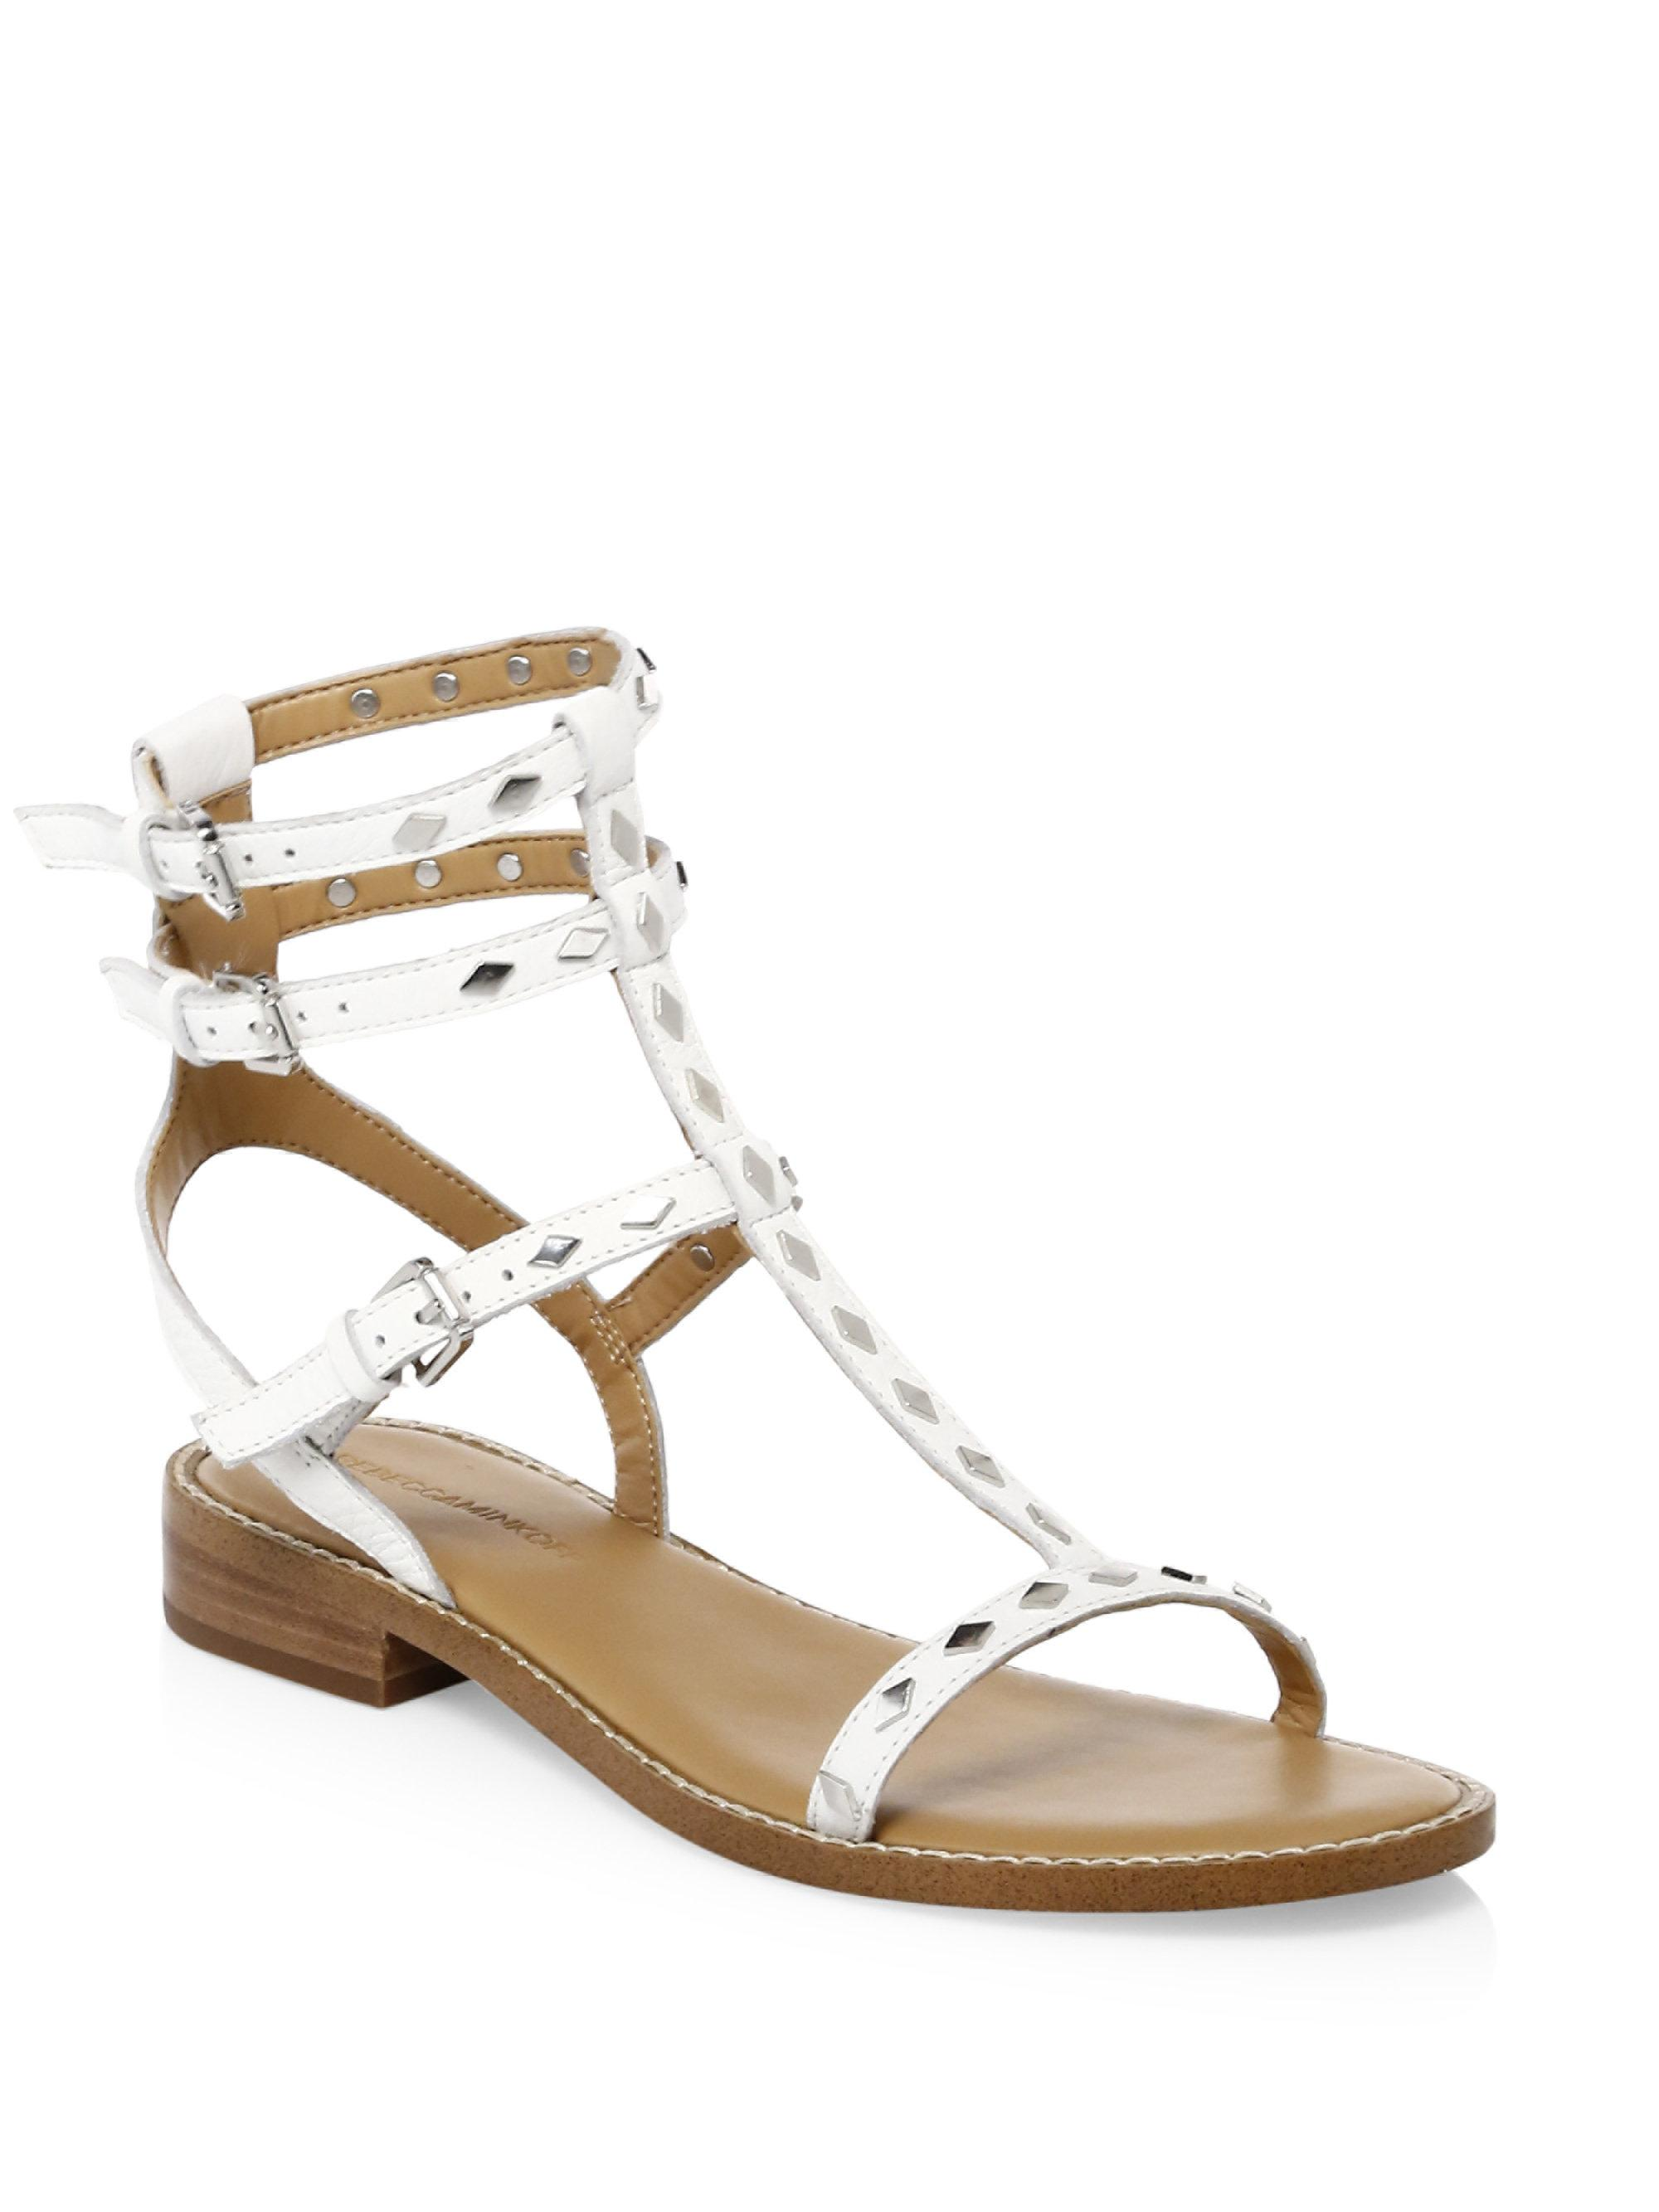 Rebecca Minkoff Stud-Embellished Gladiator Sandals discount perfect buy cheap factory outlet online shop from china 7UDaQlxXW